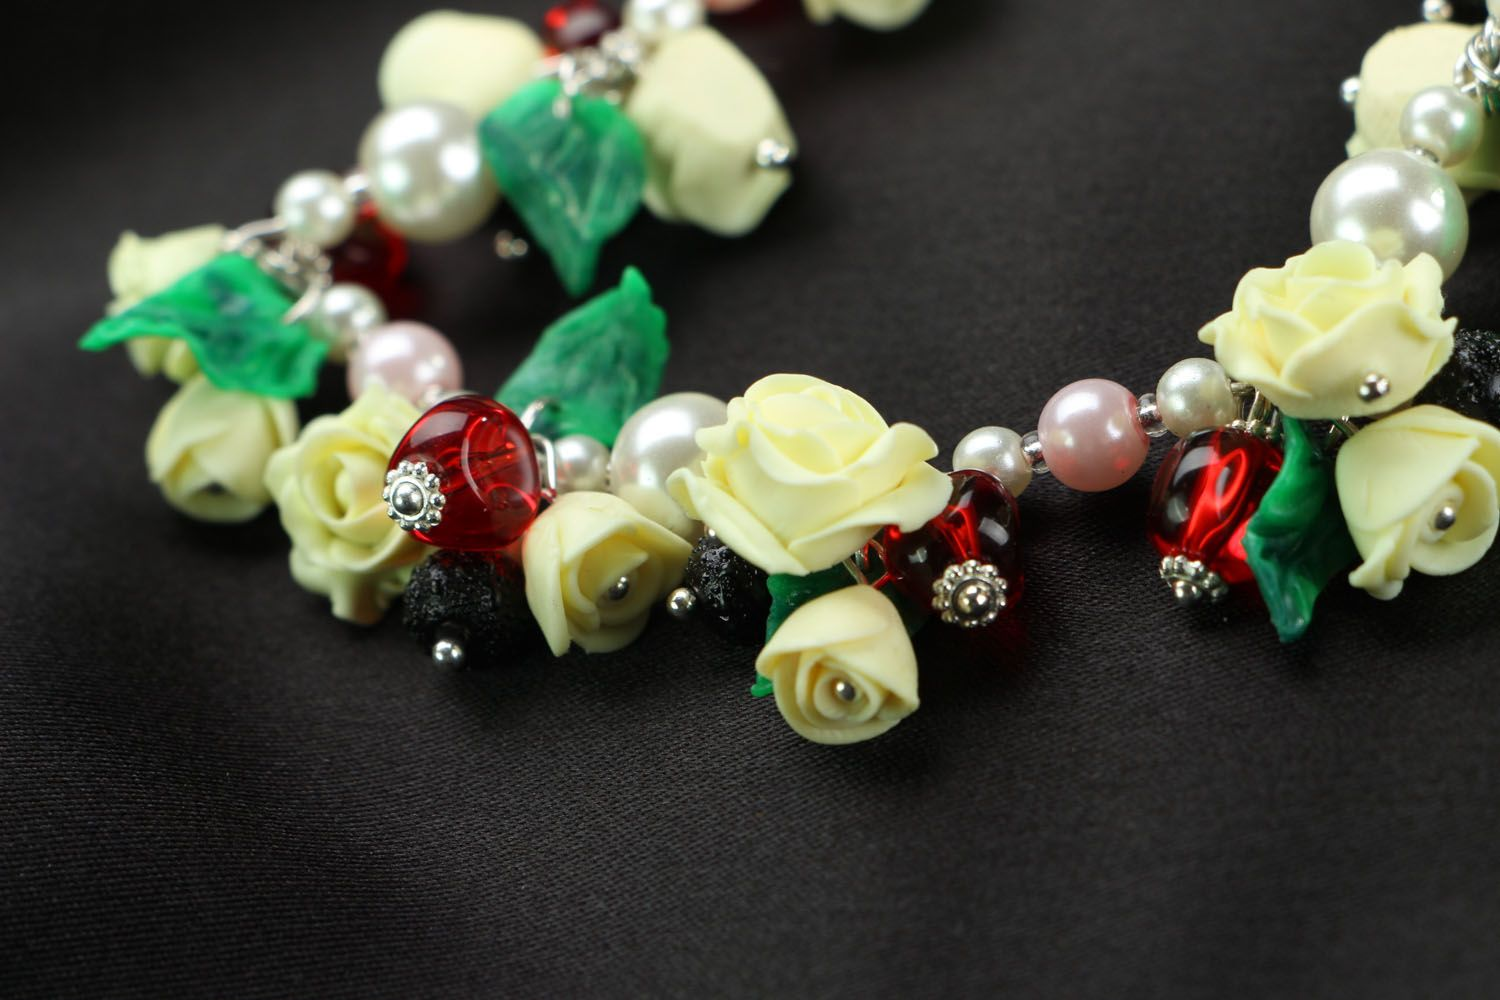 Bracelet with charms in the shape of roses photo 6